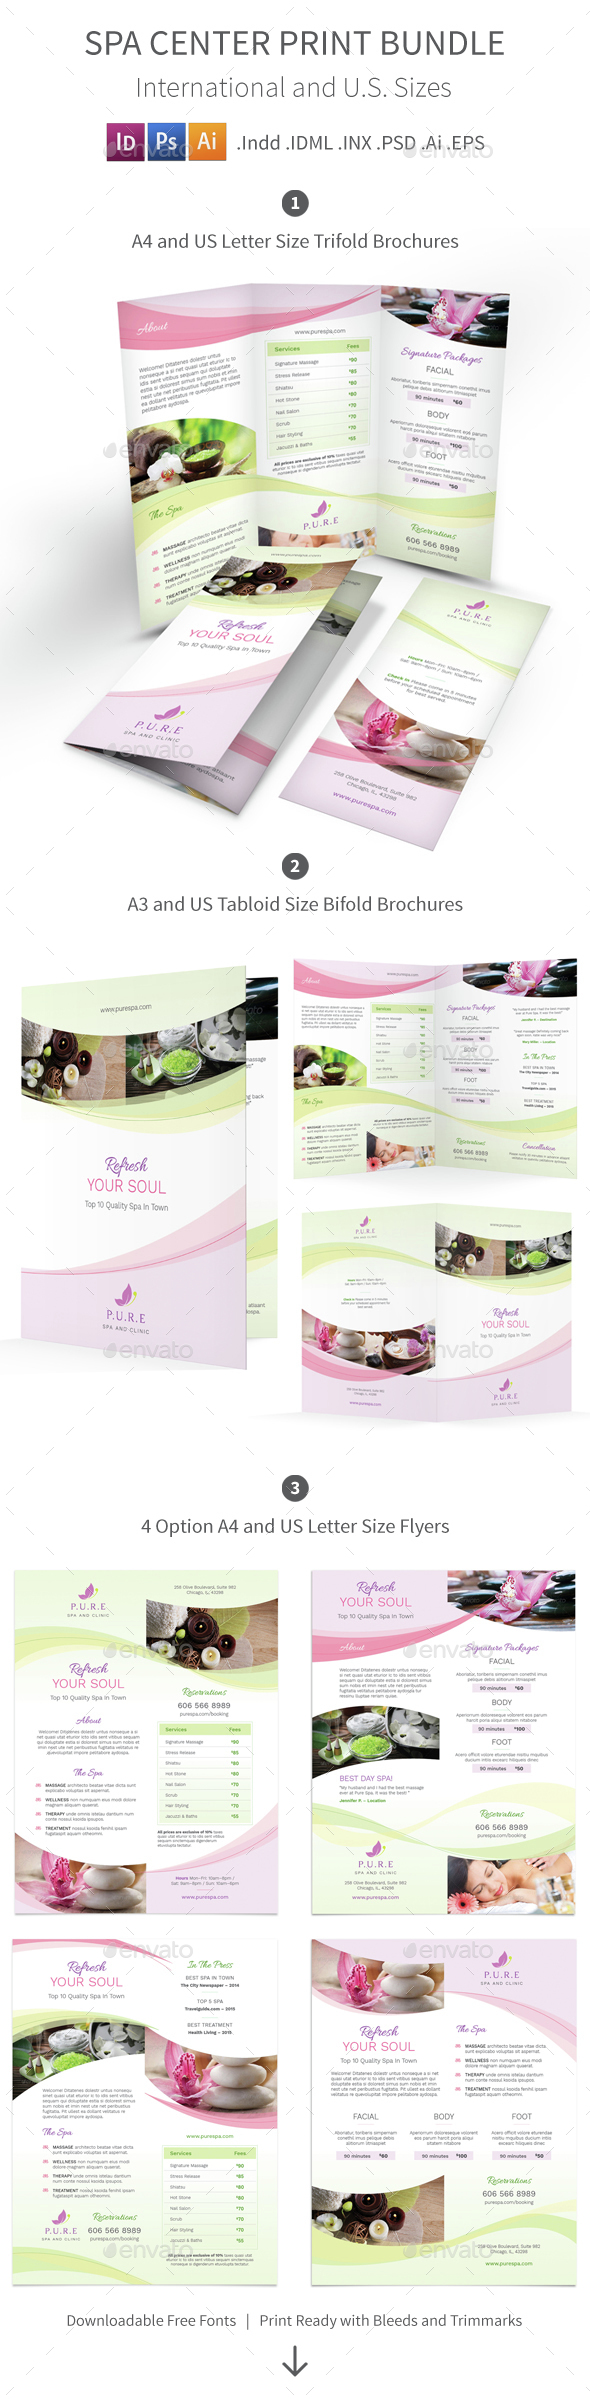 Spa Center Print Bundle - Informational Brochures